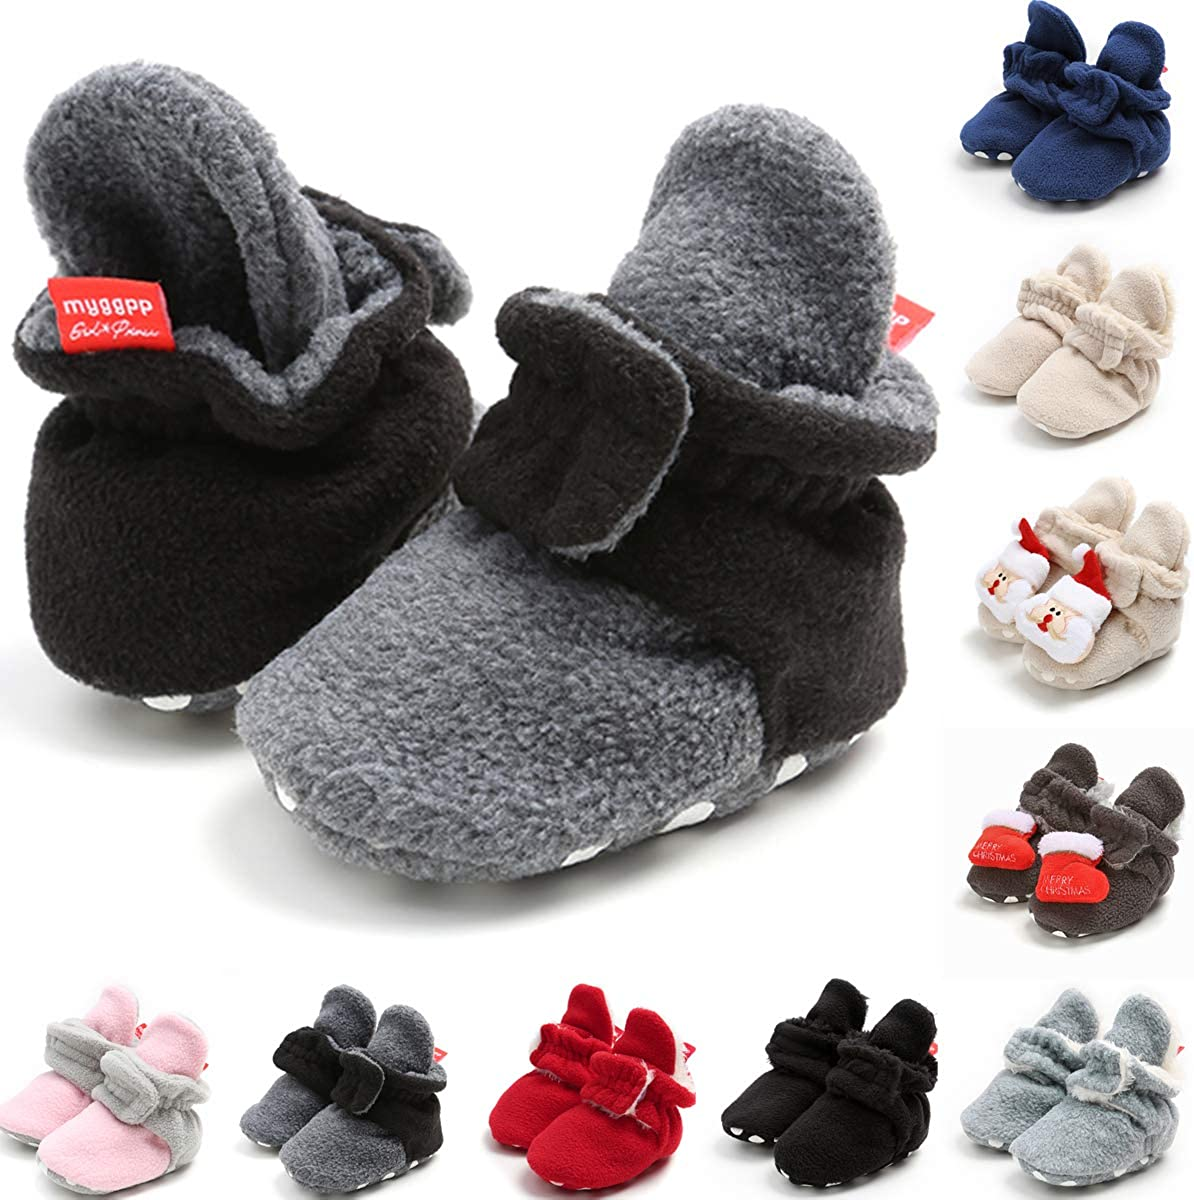 Baby Mary Jane Flats Princess Dress Shoes Soft Baby Crib Shoes Tuoting Infant Baby Girl Shoes